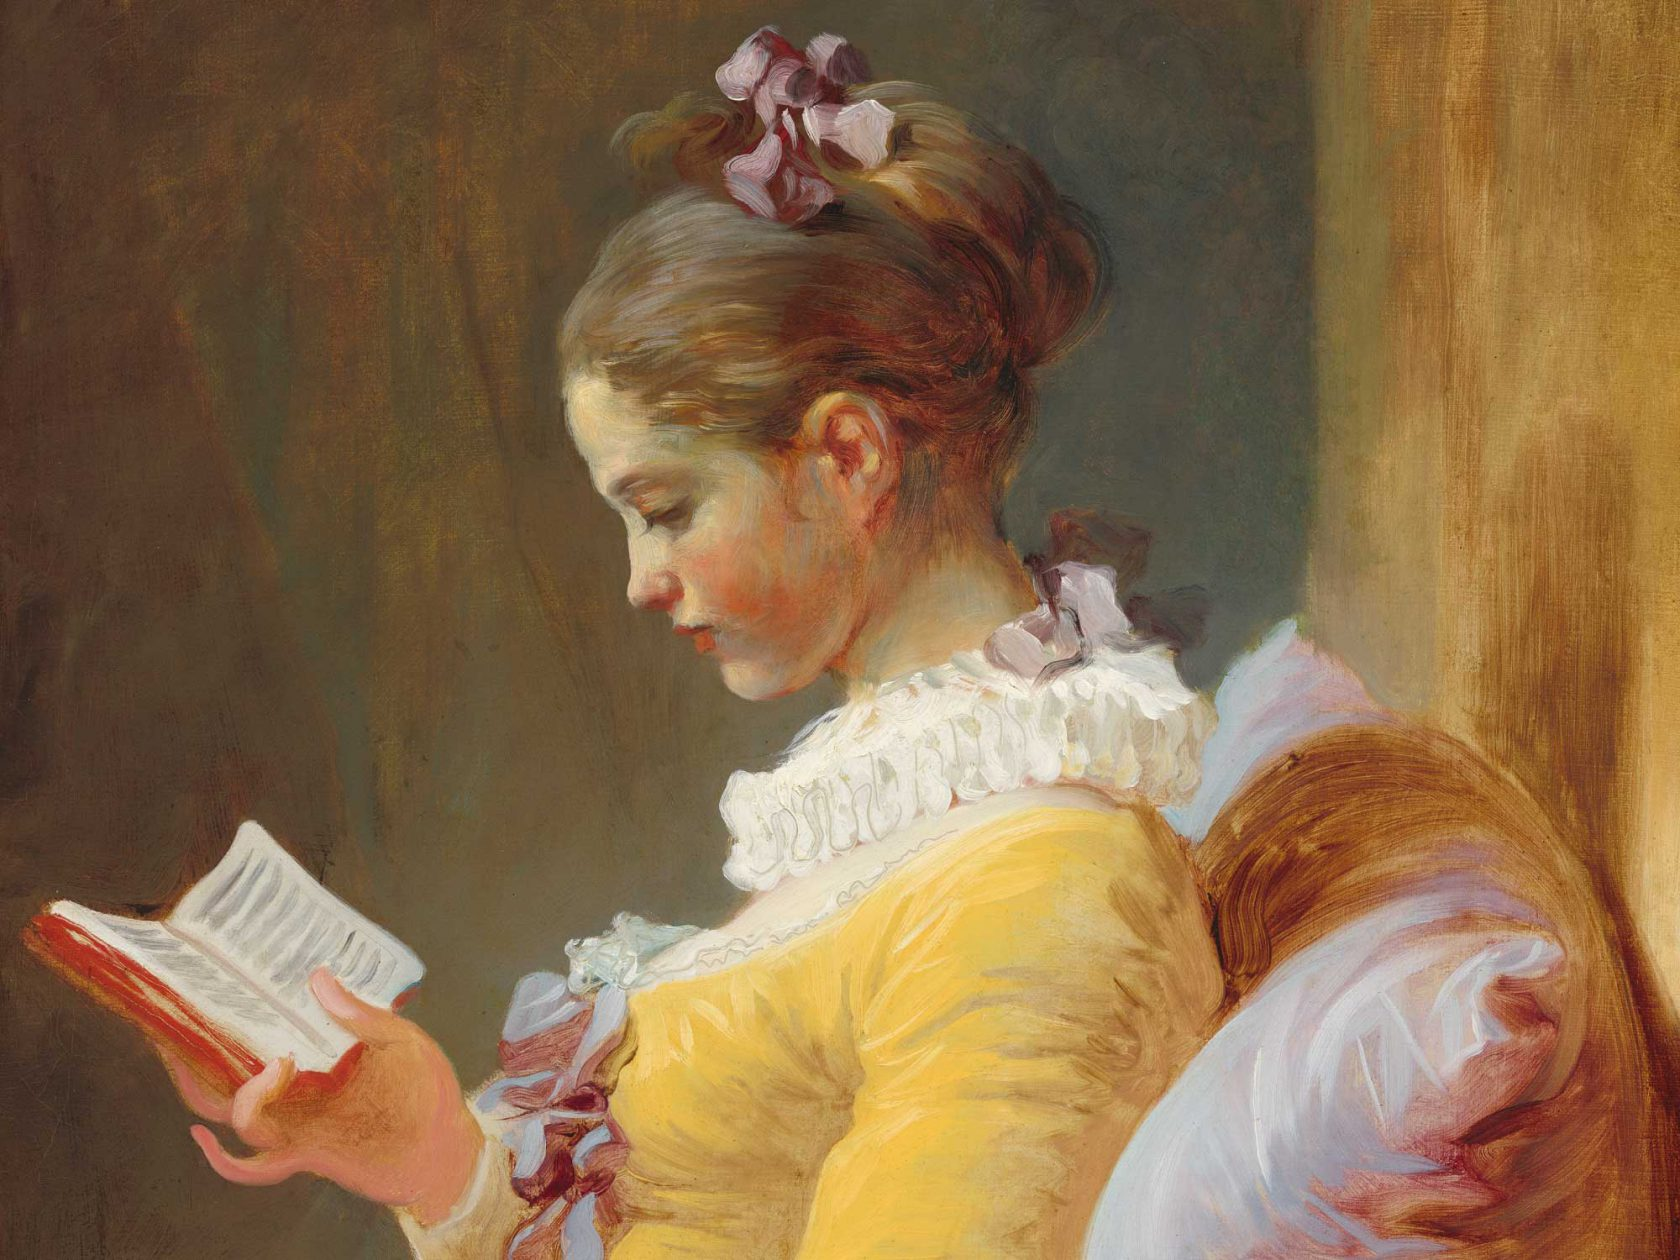 A Young Girl Reading (La Liseuse), Jean-Honoré Fragonard, ca. 1170, [Public Domain], via Wikimedia Commons